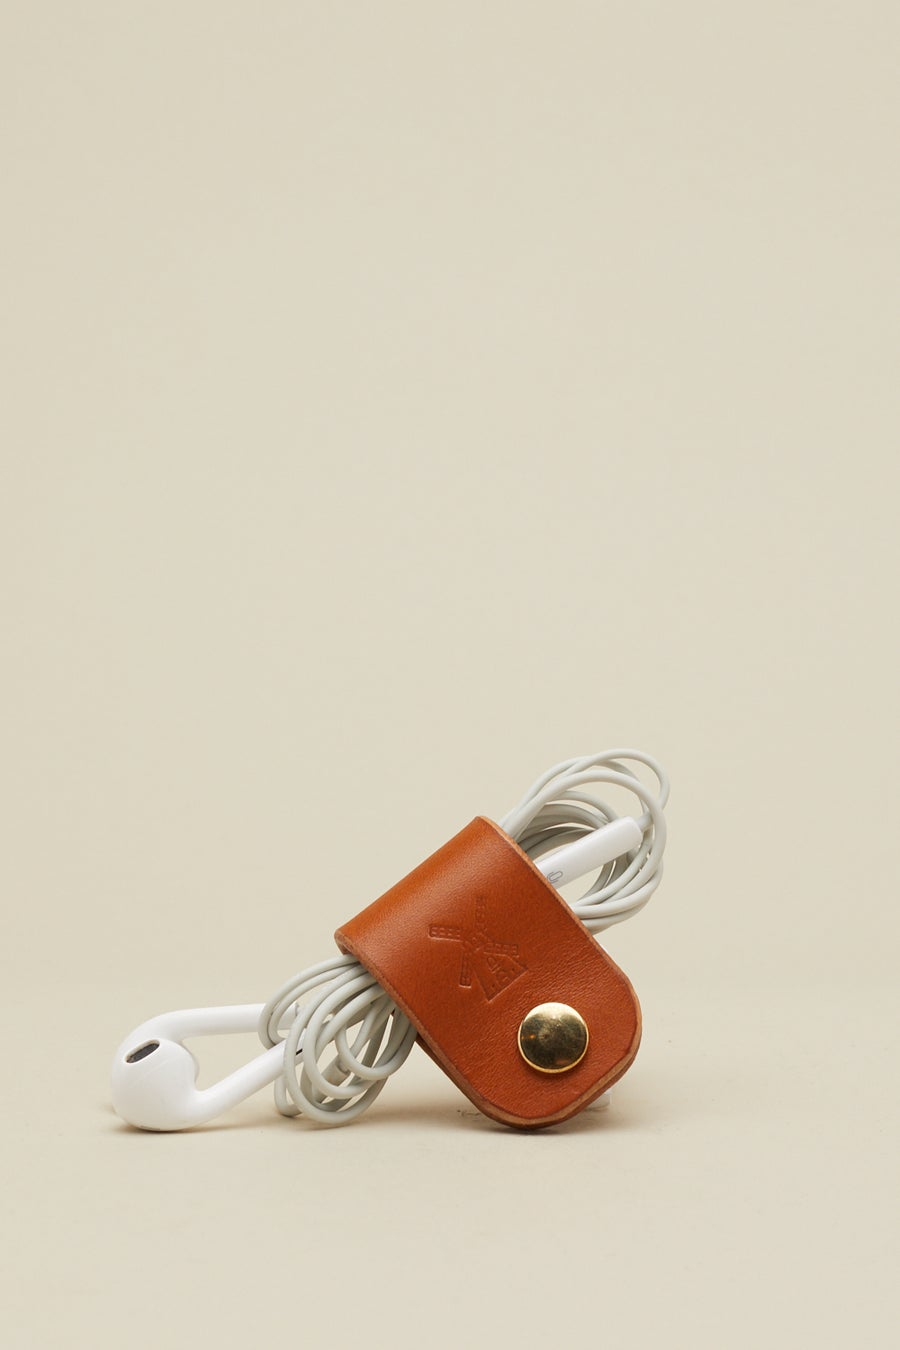 Image of Earphone Holder in Tan